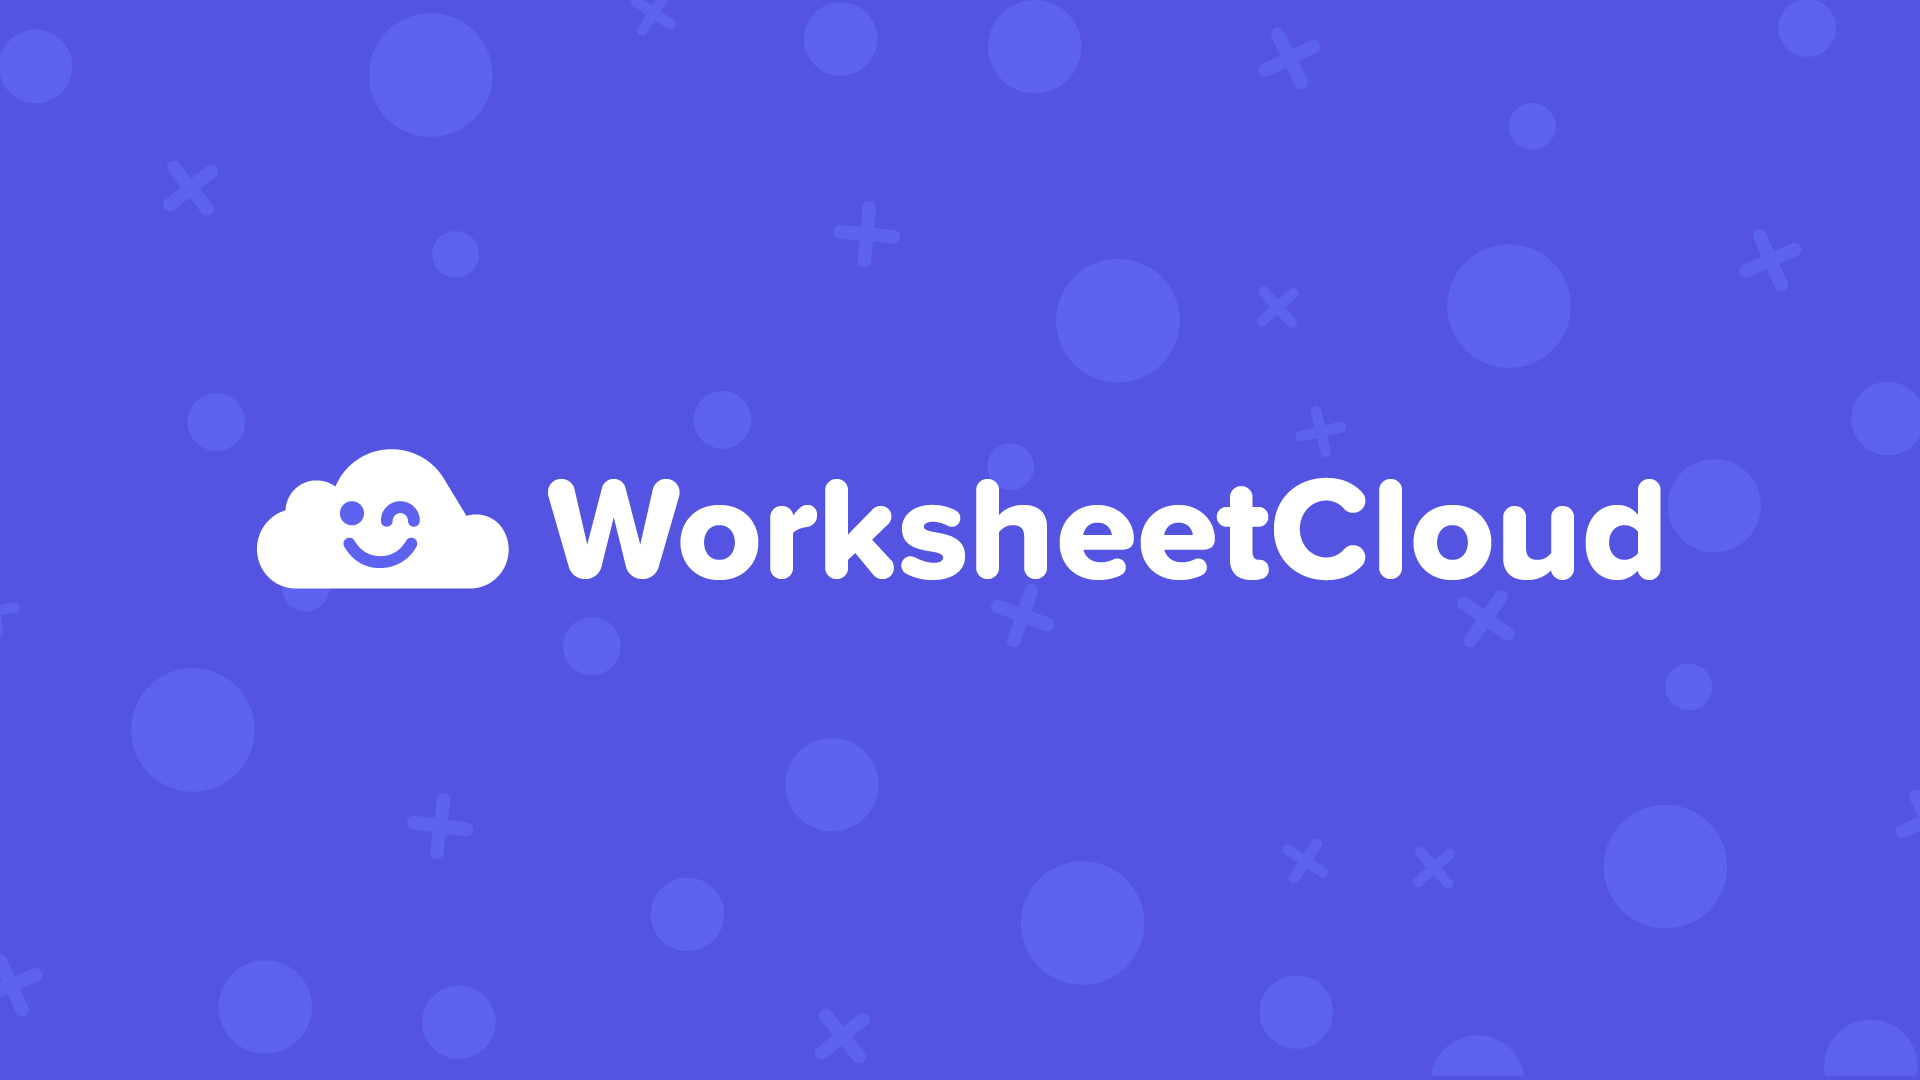 WorksheetCloud